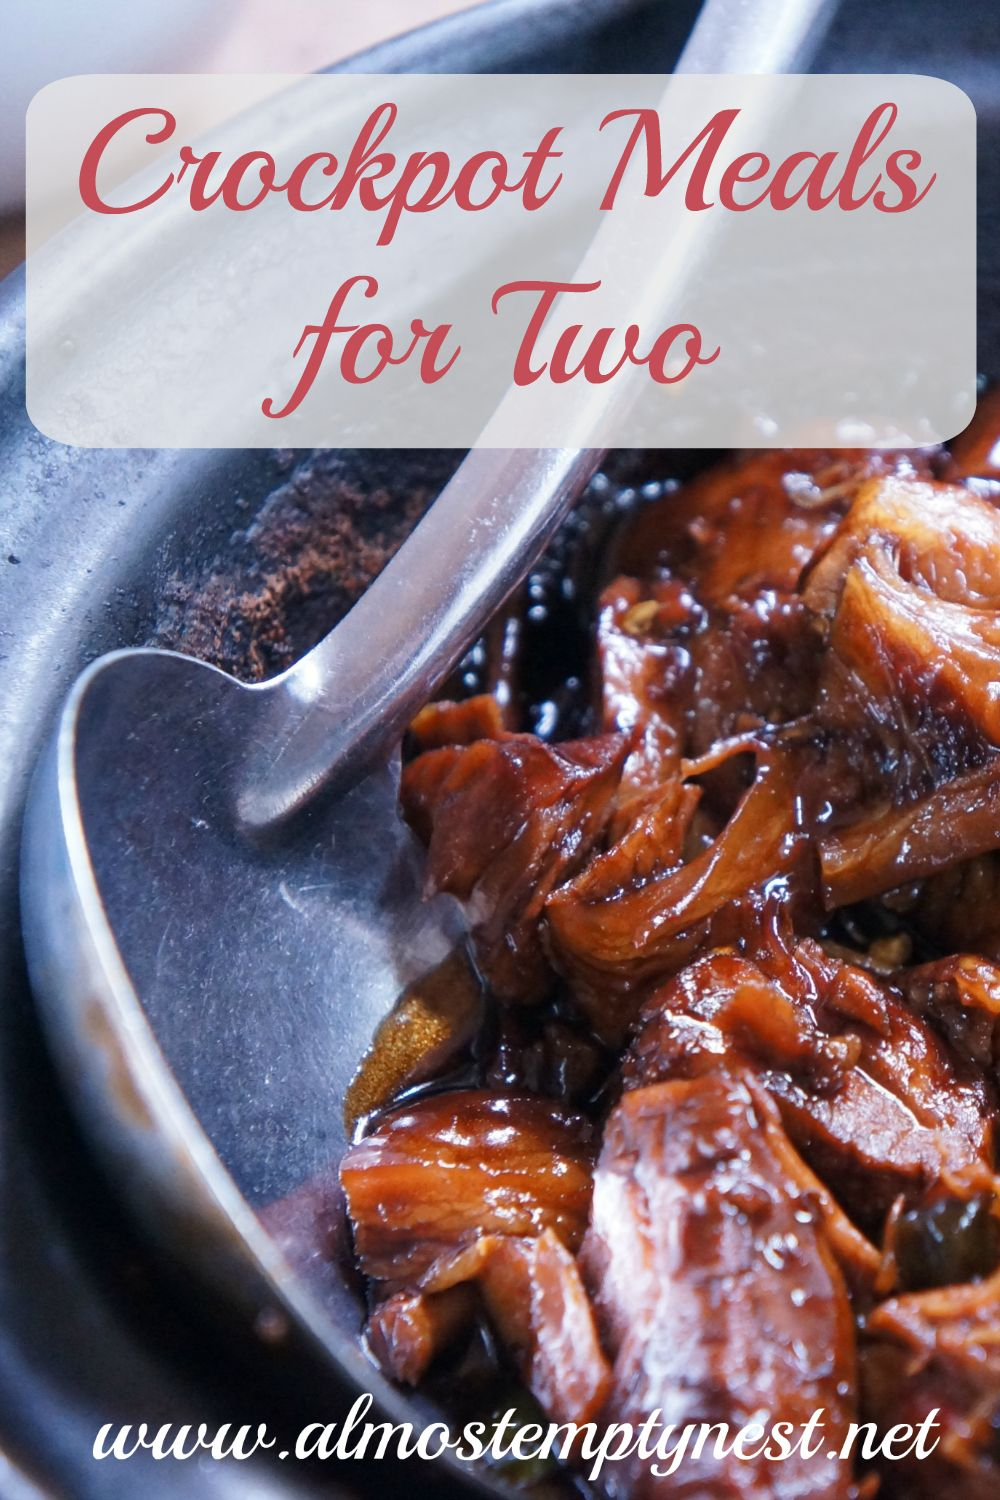 Photo of Crockpot recipes for two